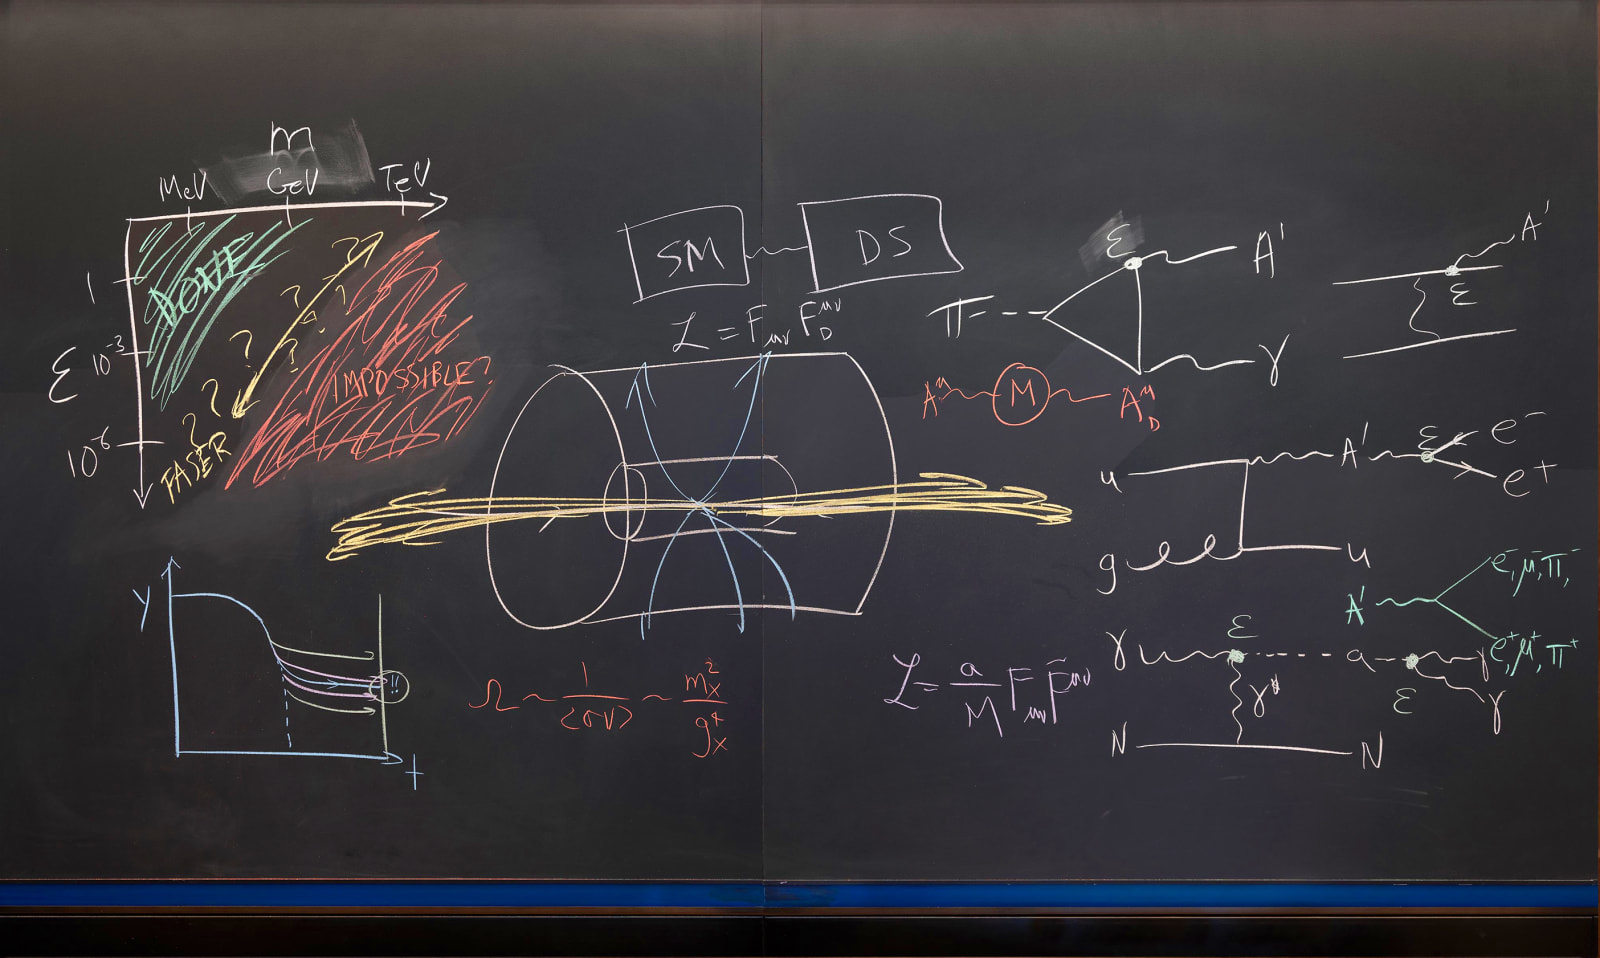 Formulas on chalkboard by mathematician Jonathan Feng, from the Do Not Erase series by Jessica Wynne